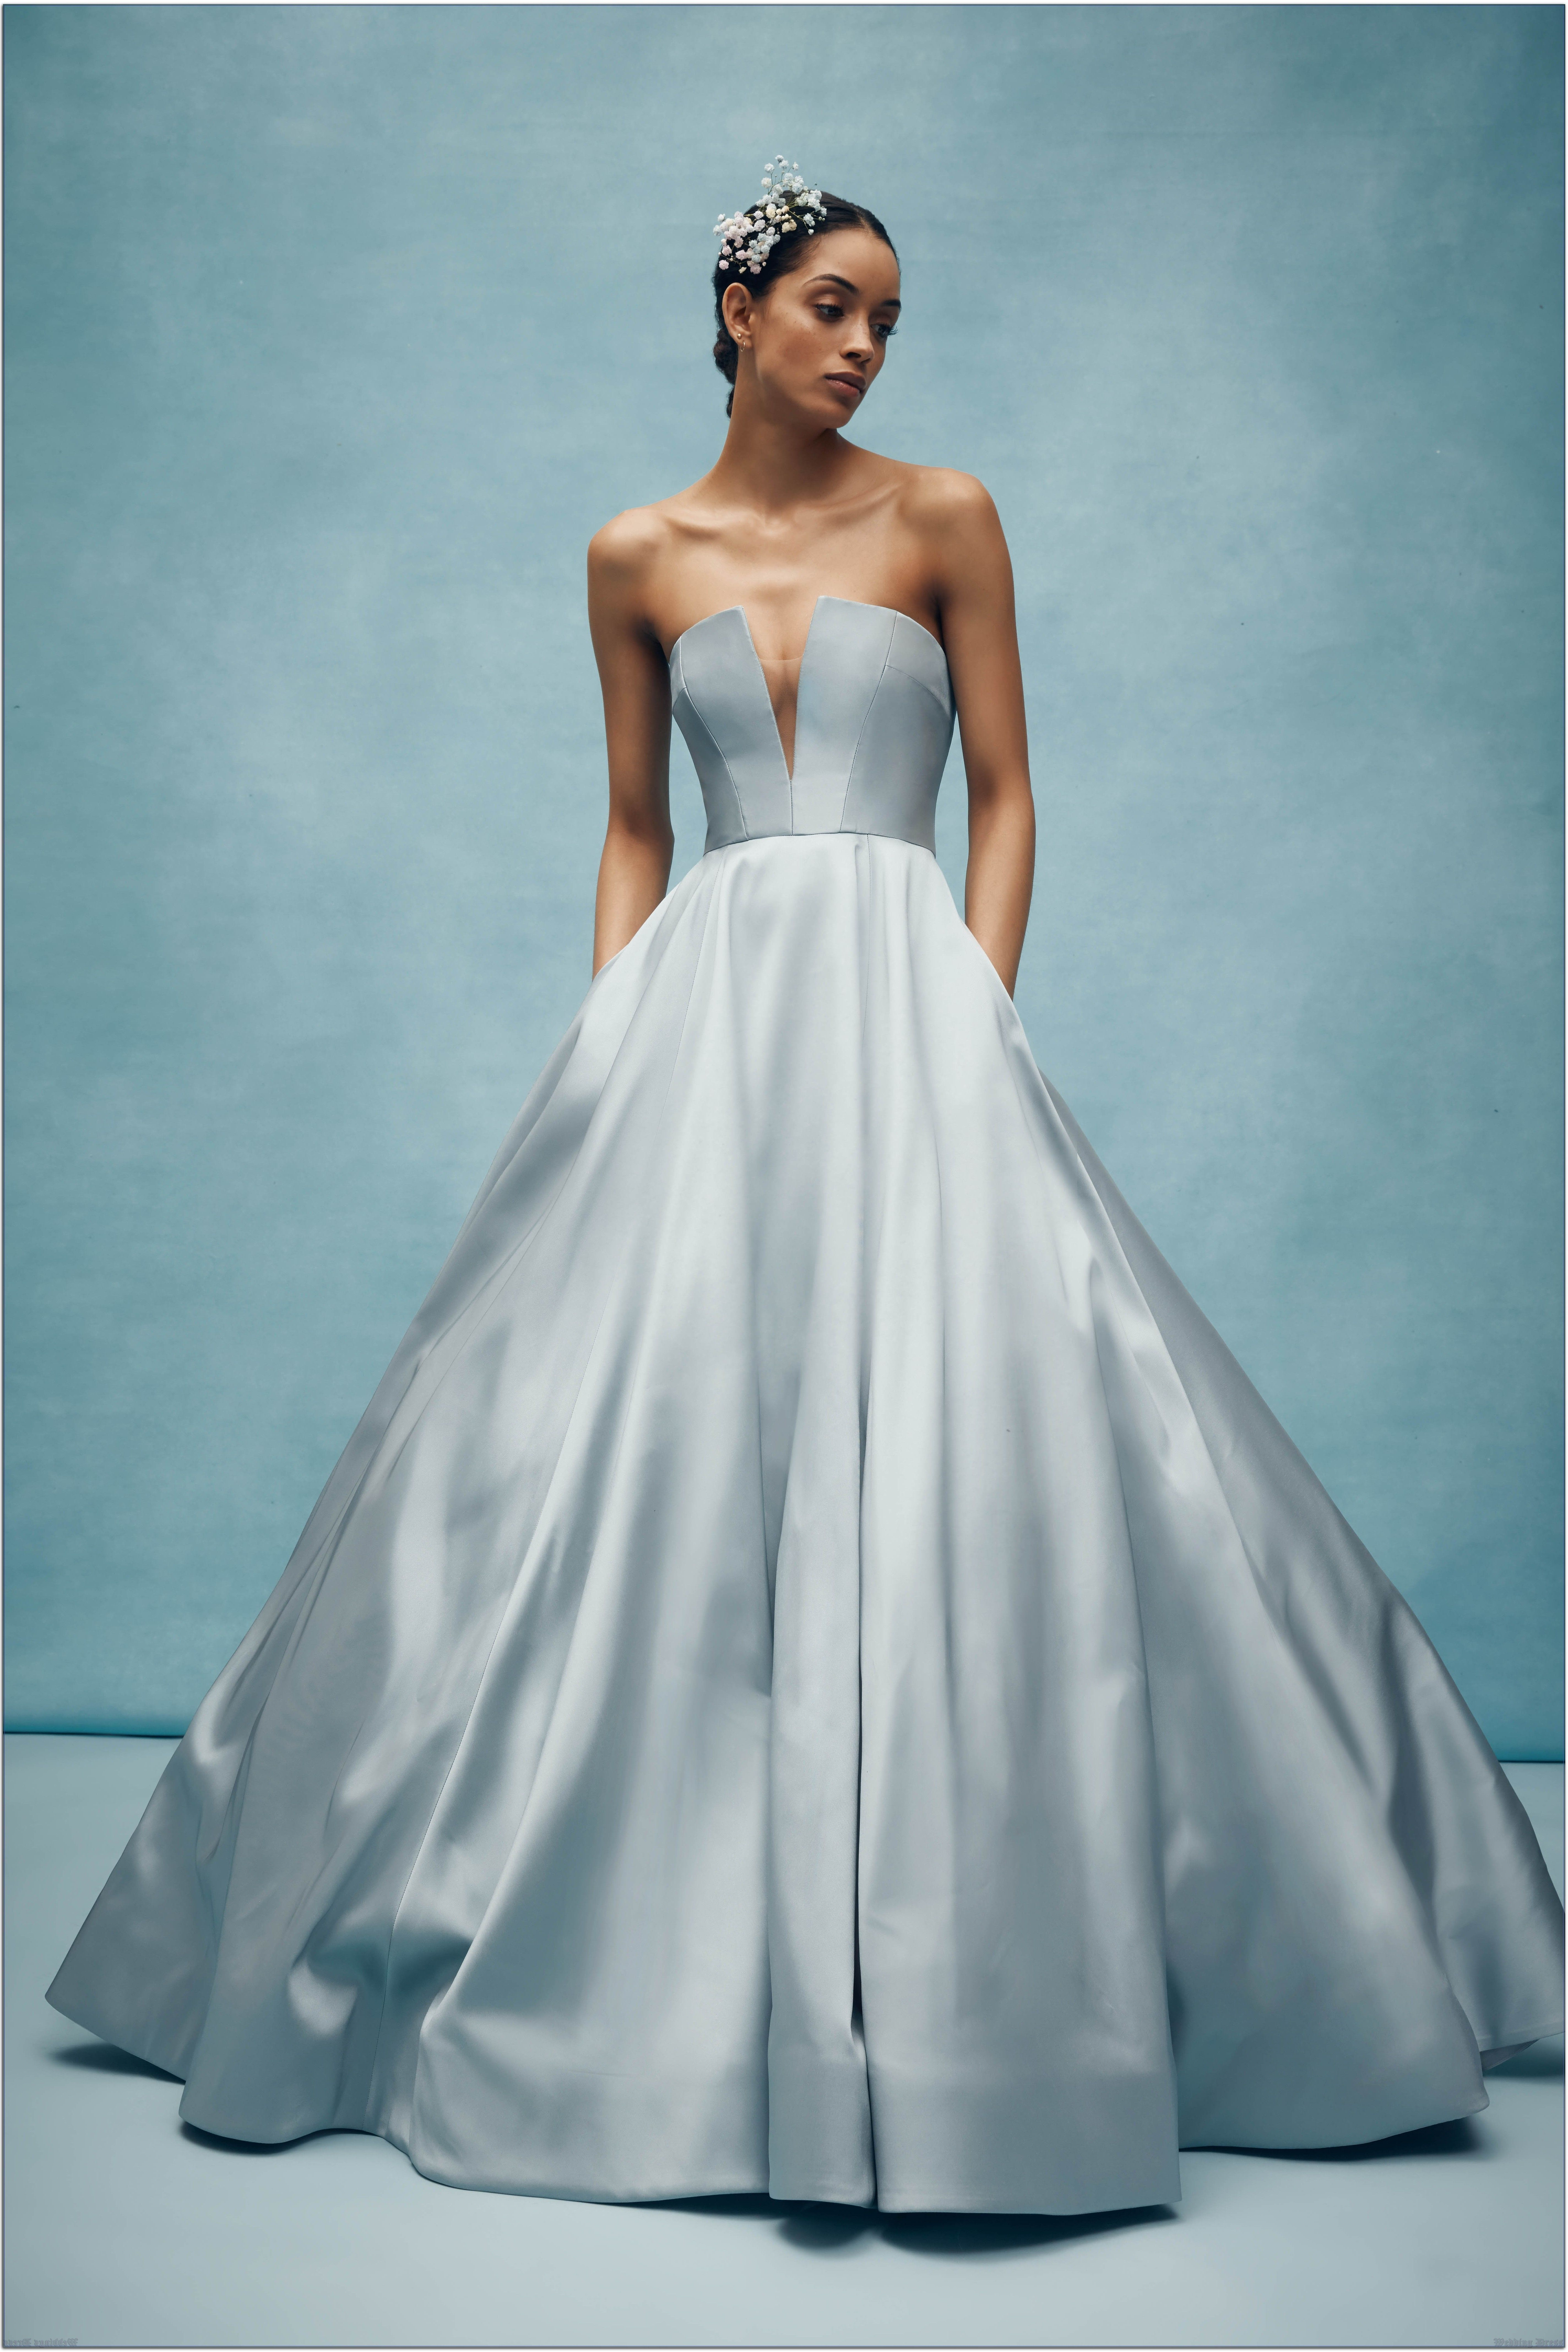 Can You Pass The Weddings Dress Test?